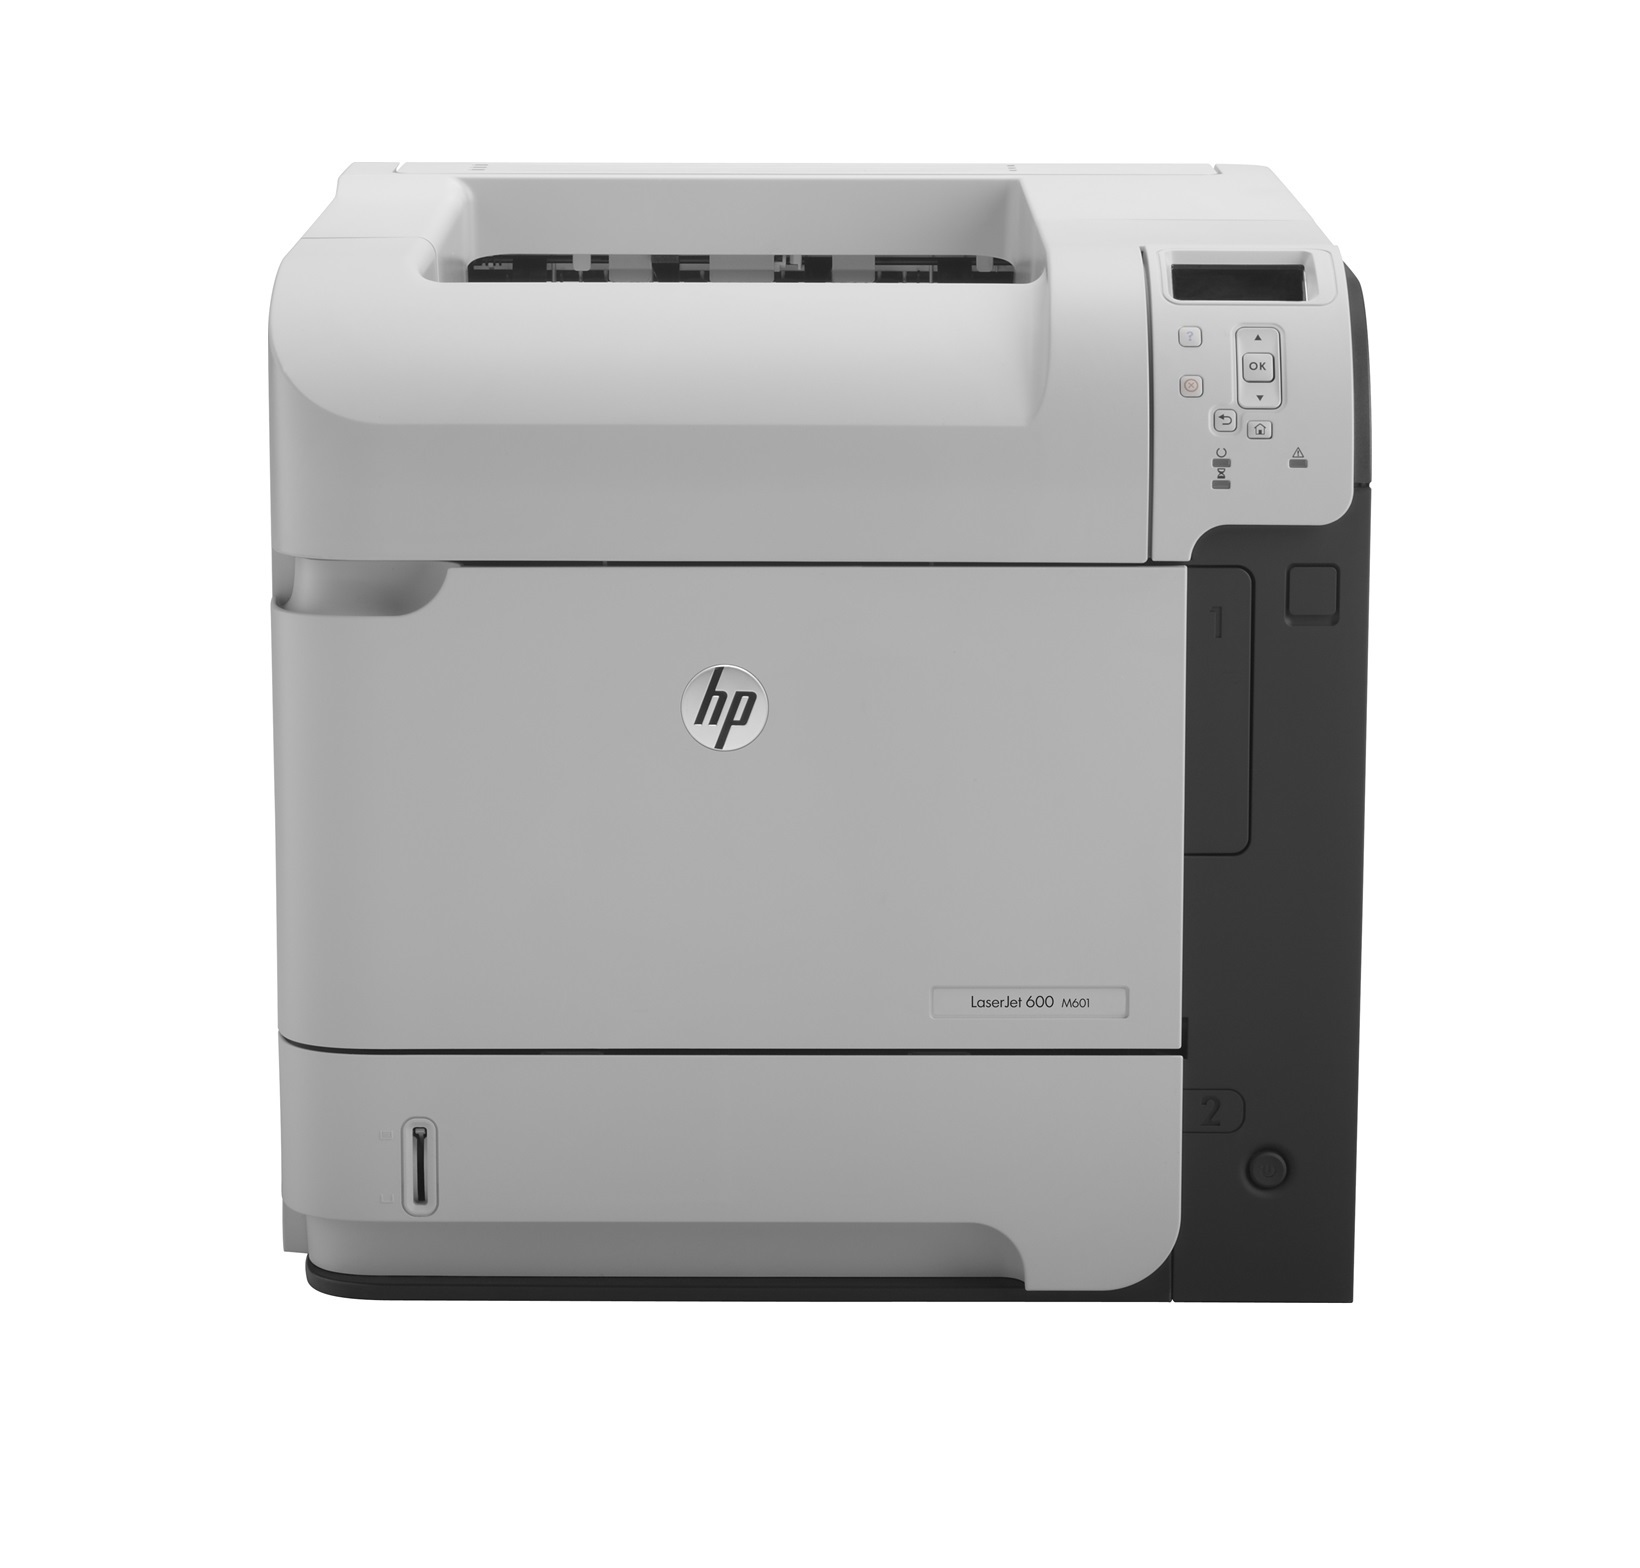 HP LaserJet 600 M601n Printer CE989A - Refurbished